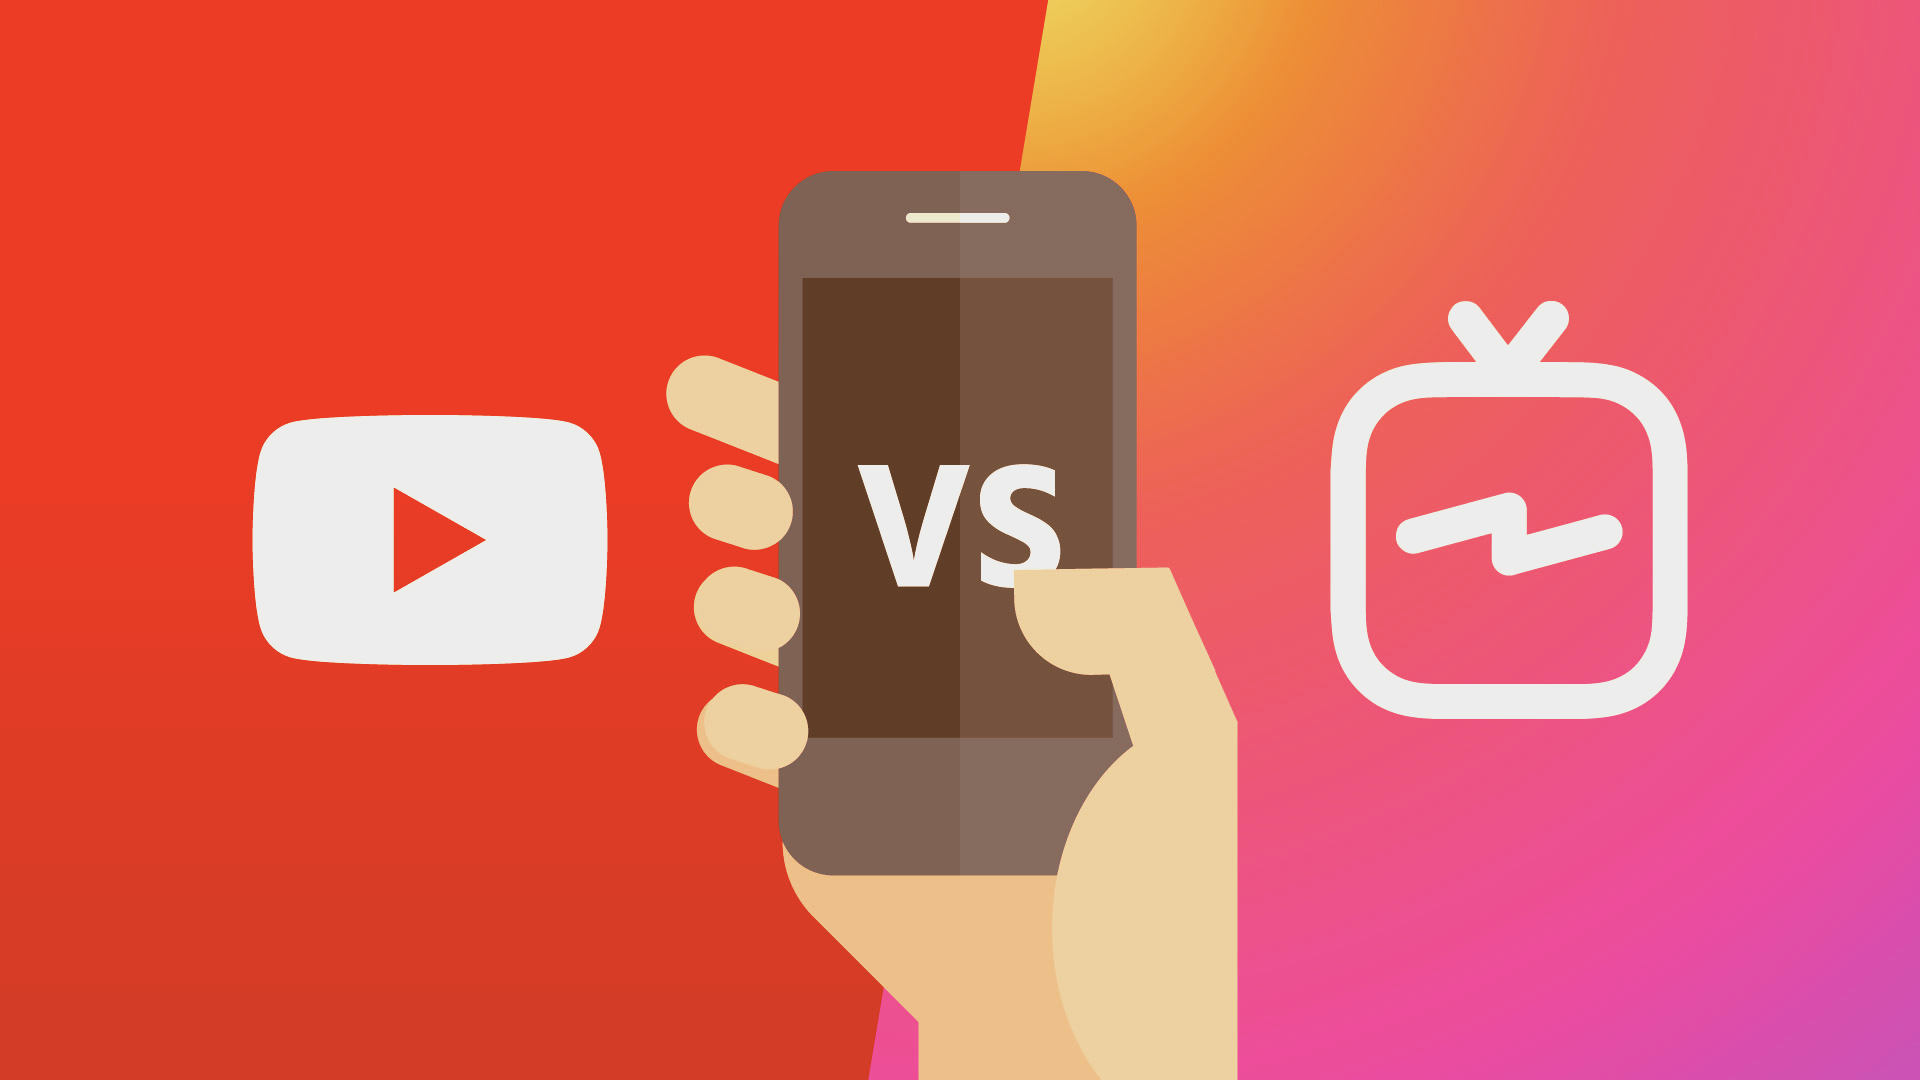 Instagram marketing: nasce IGTV e si apre la sfida a YouTube